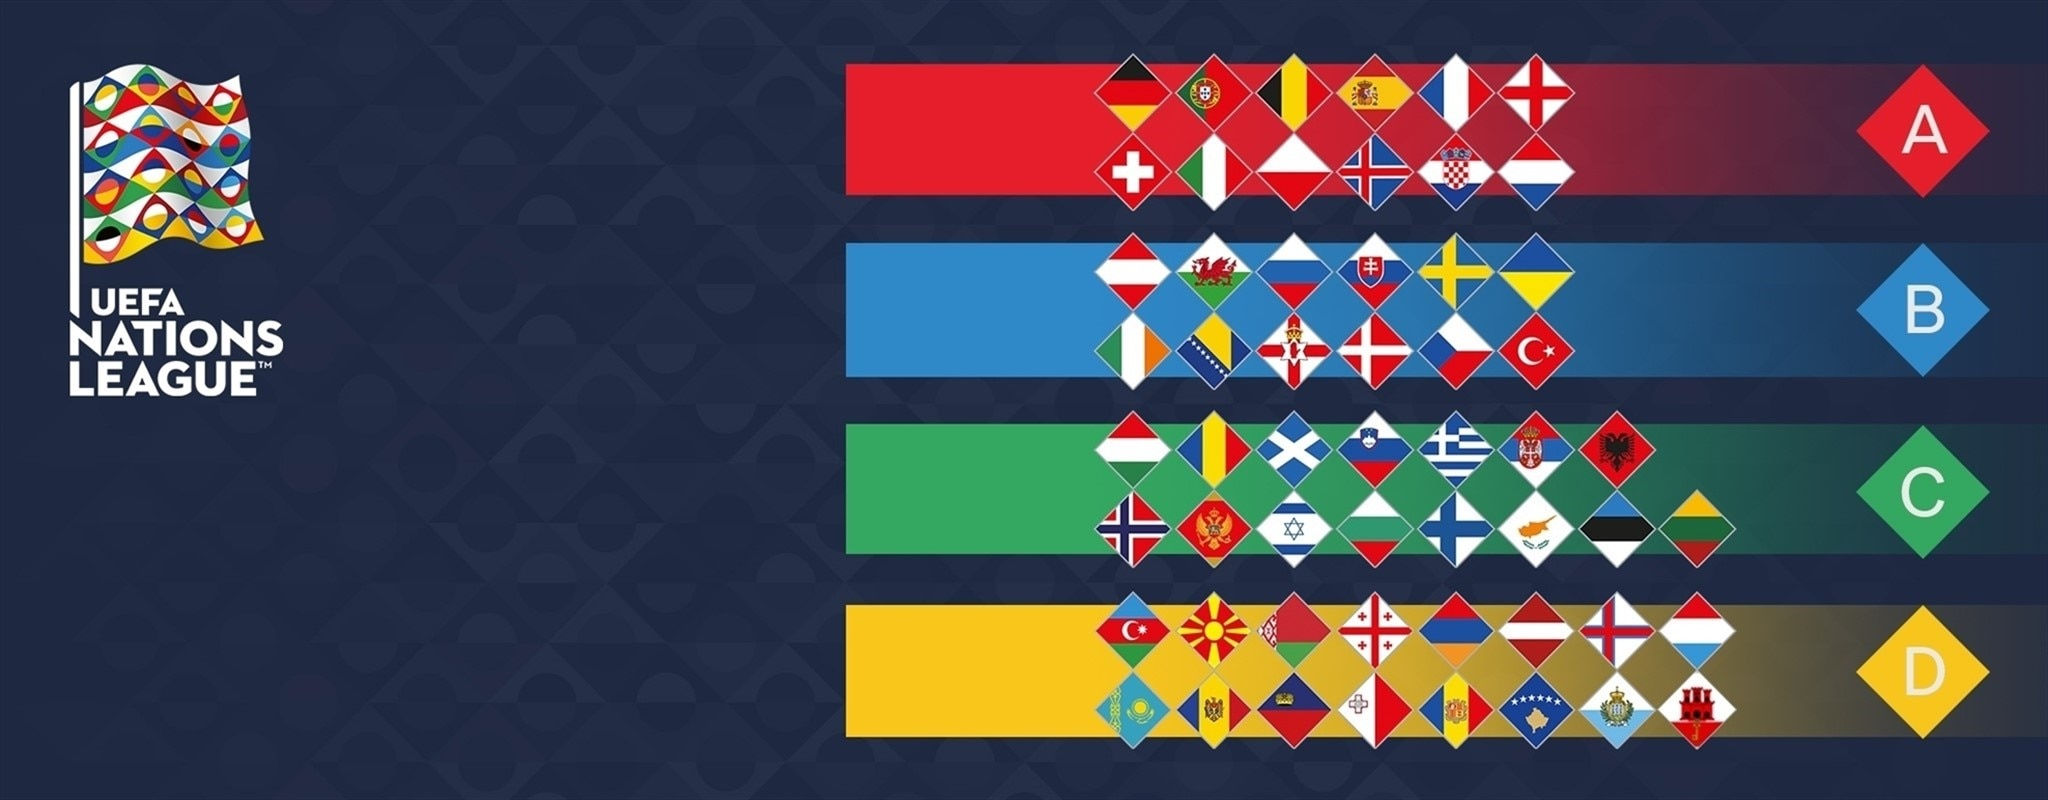 Check out the seedings ahead of next week's Nations League draw